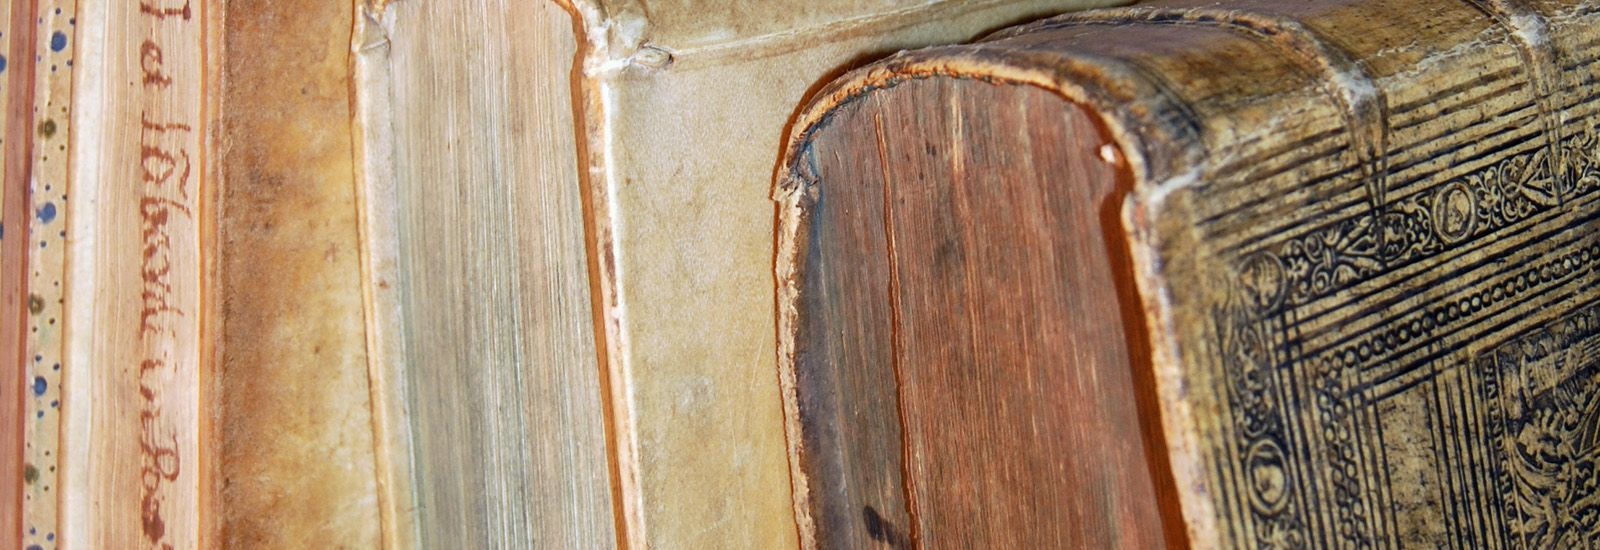 A close up of the spines of old books